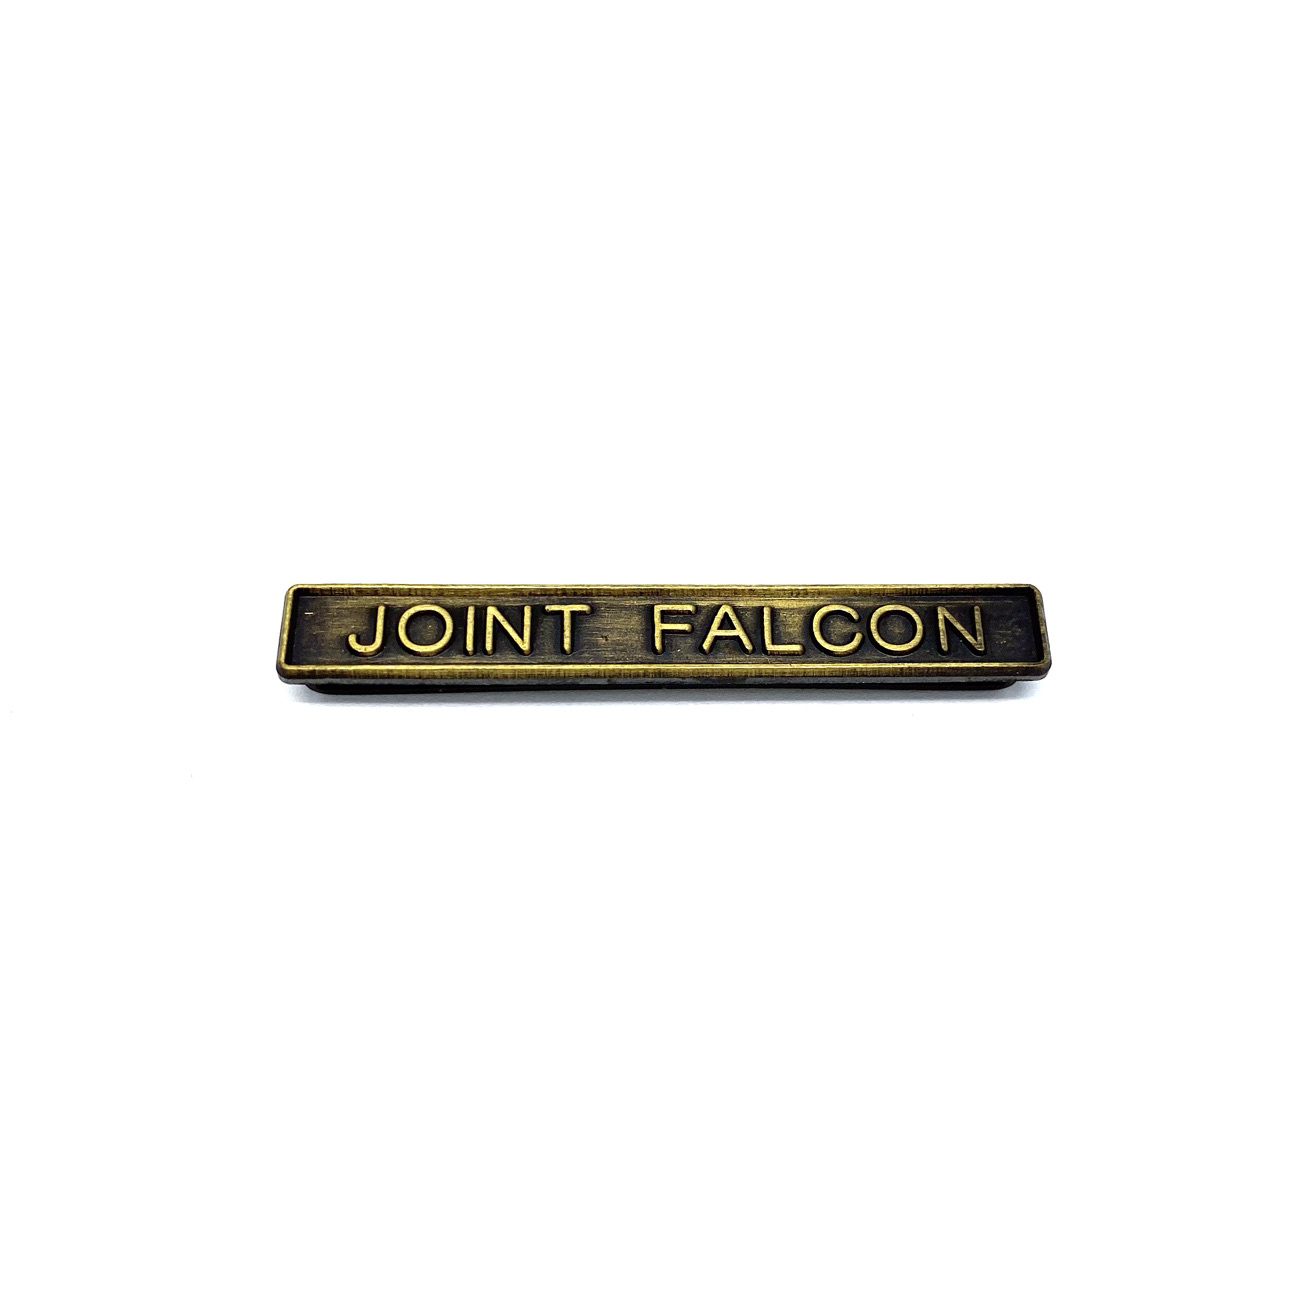 Bar Joint Falcon for military medals